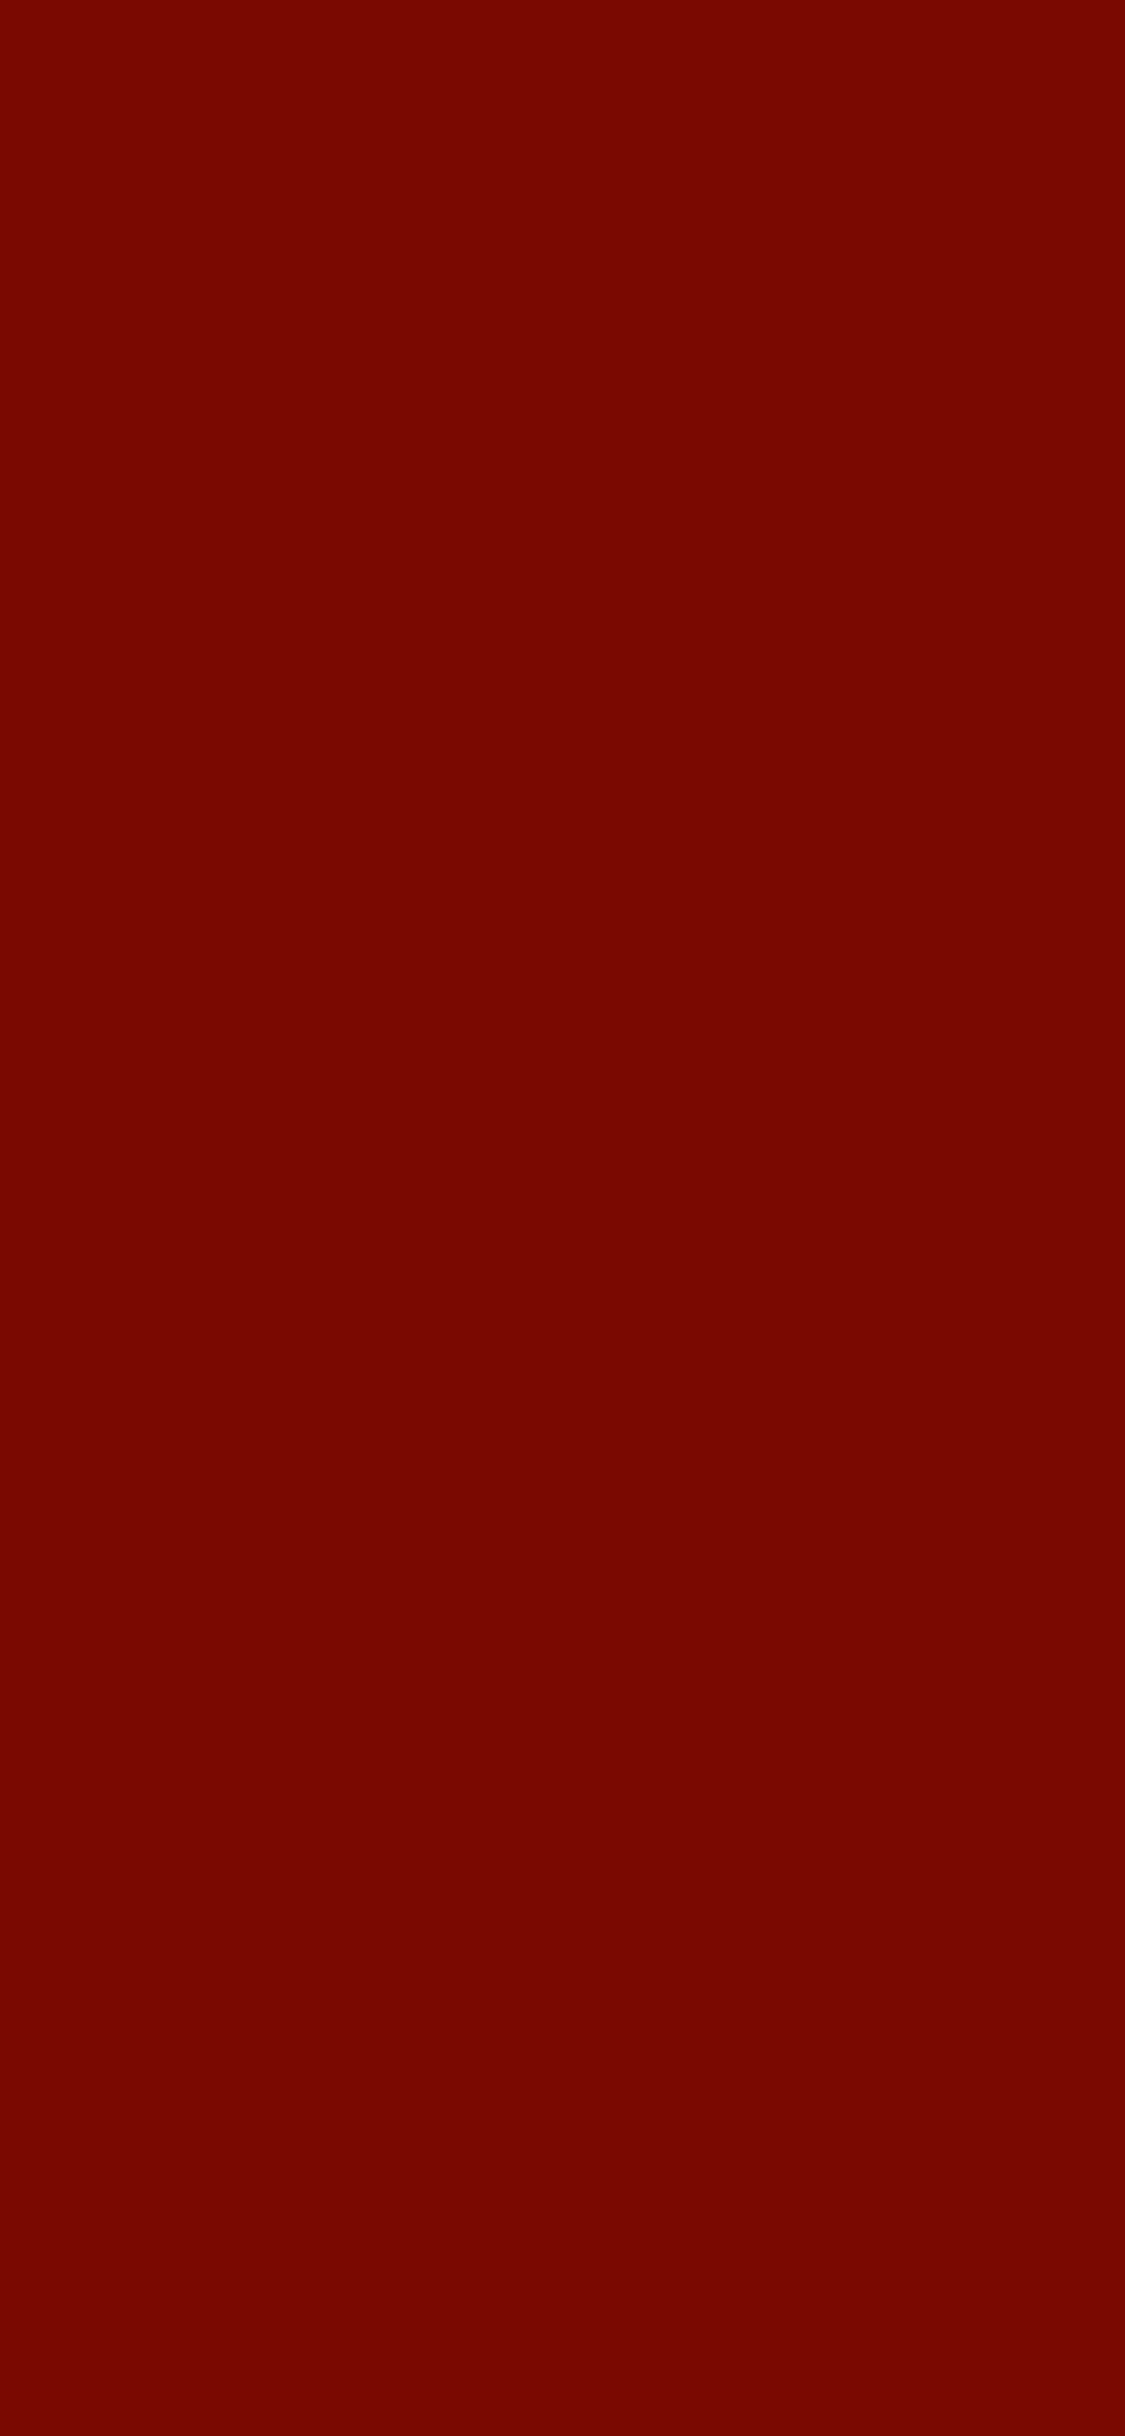 1125x2436 Barn Red Solid Color Background